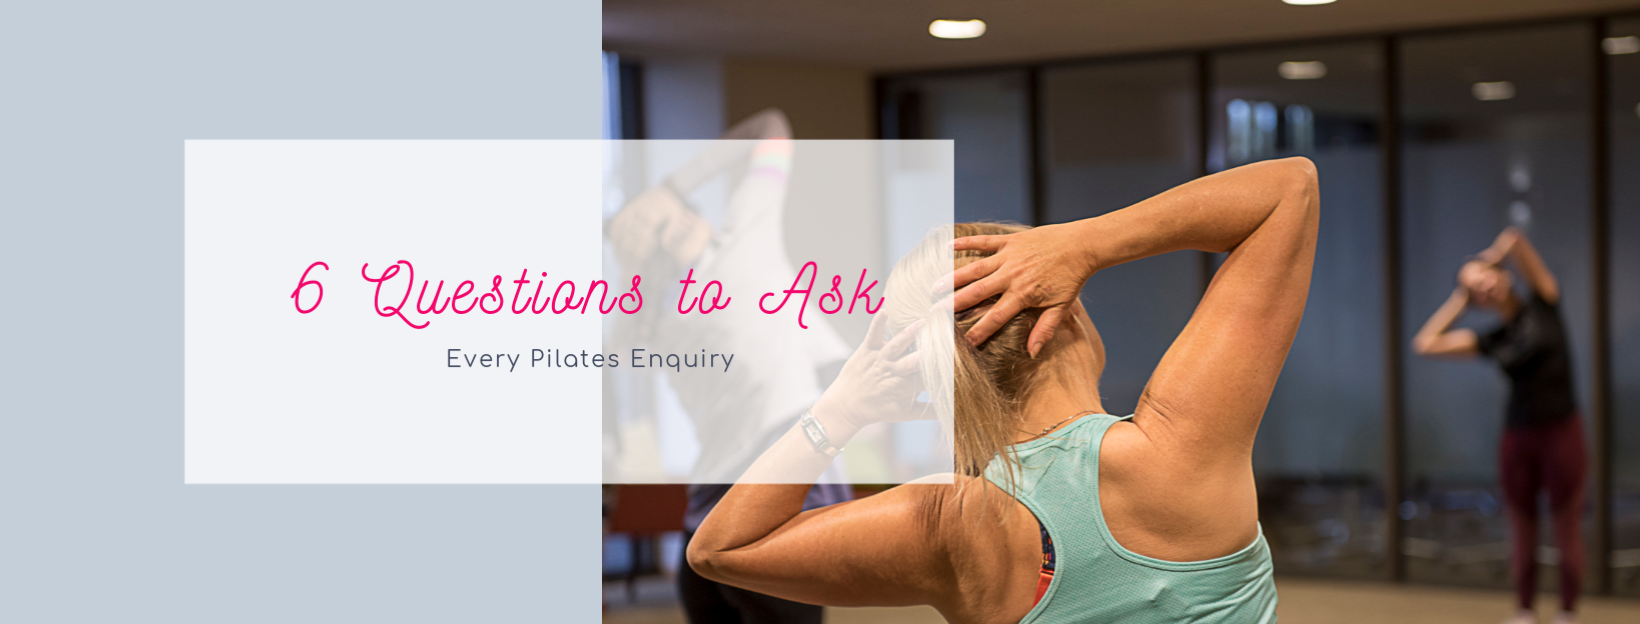 6 Questions to ask every Pilates Enquiry